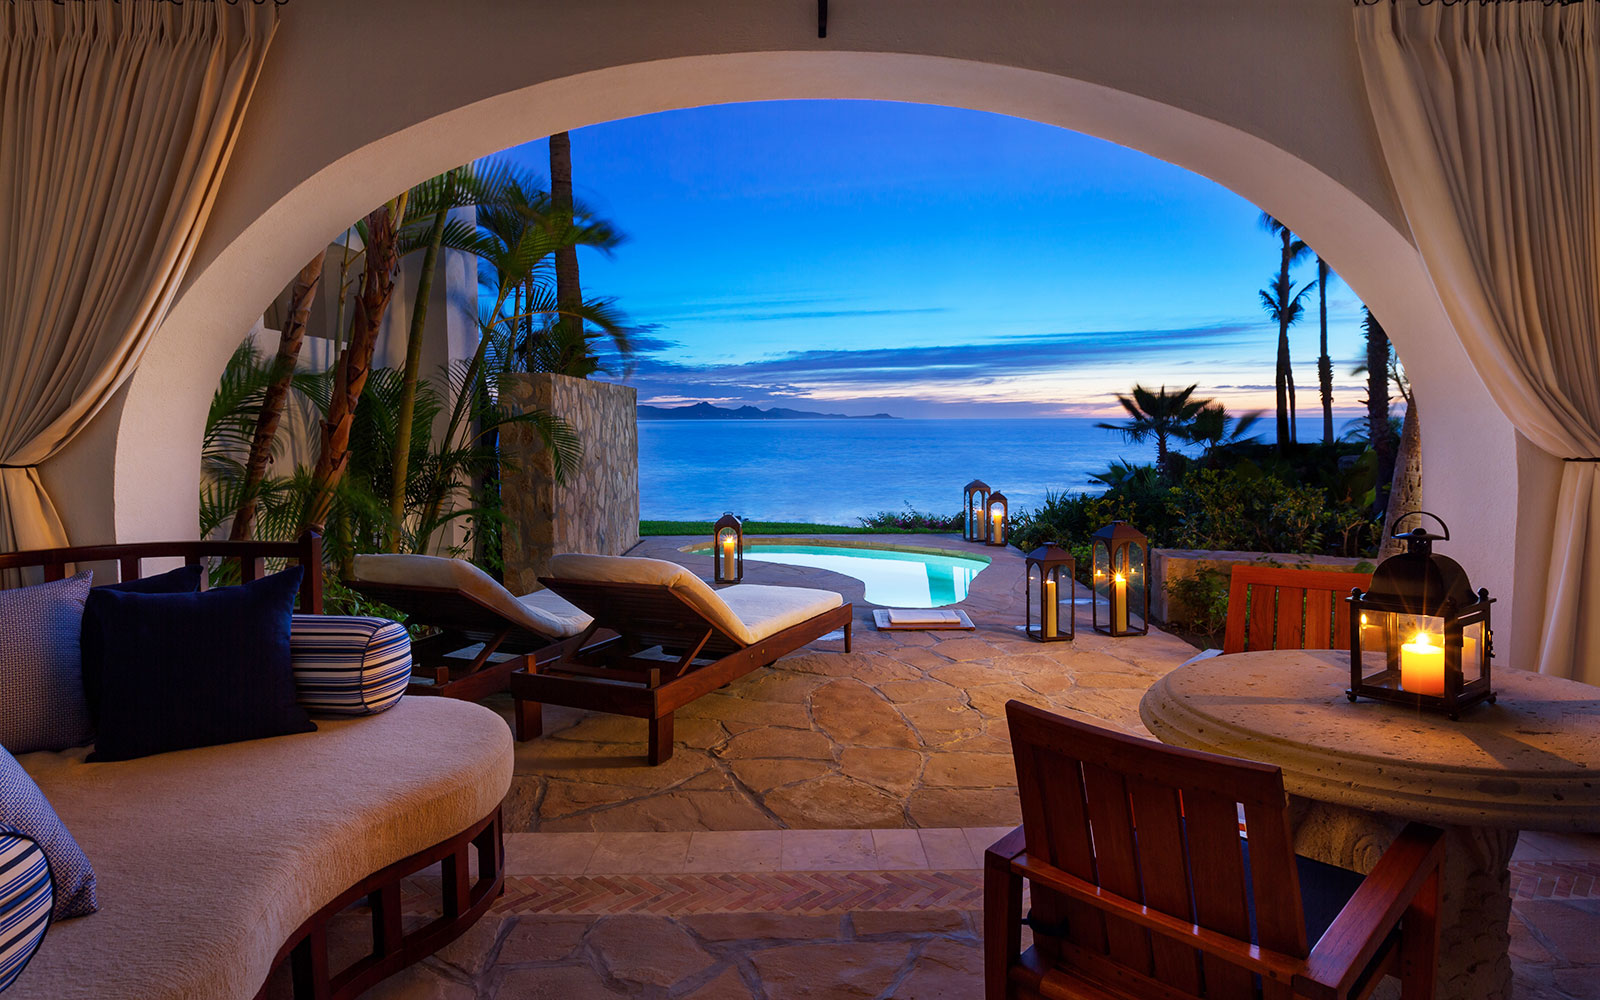 World's Top 50 Hotels: One&Only Palmilla, San Jose del Cabo, Mexico